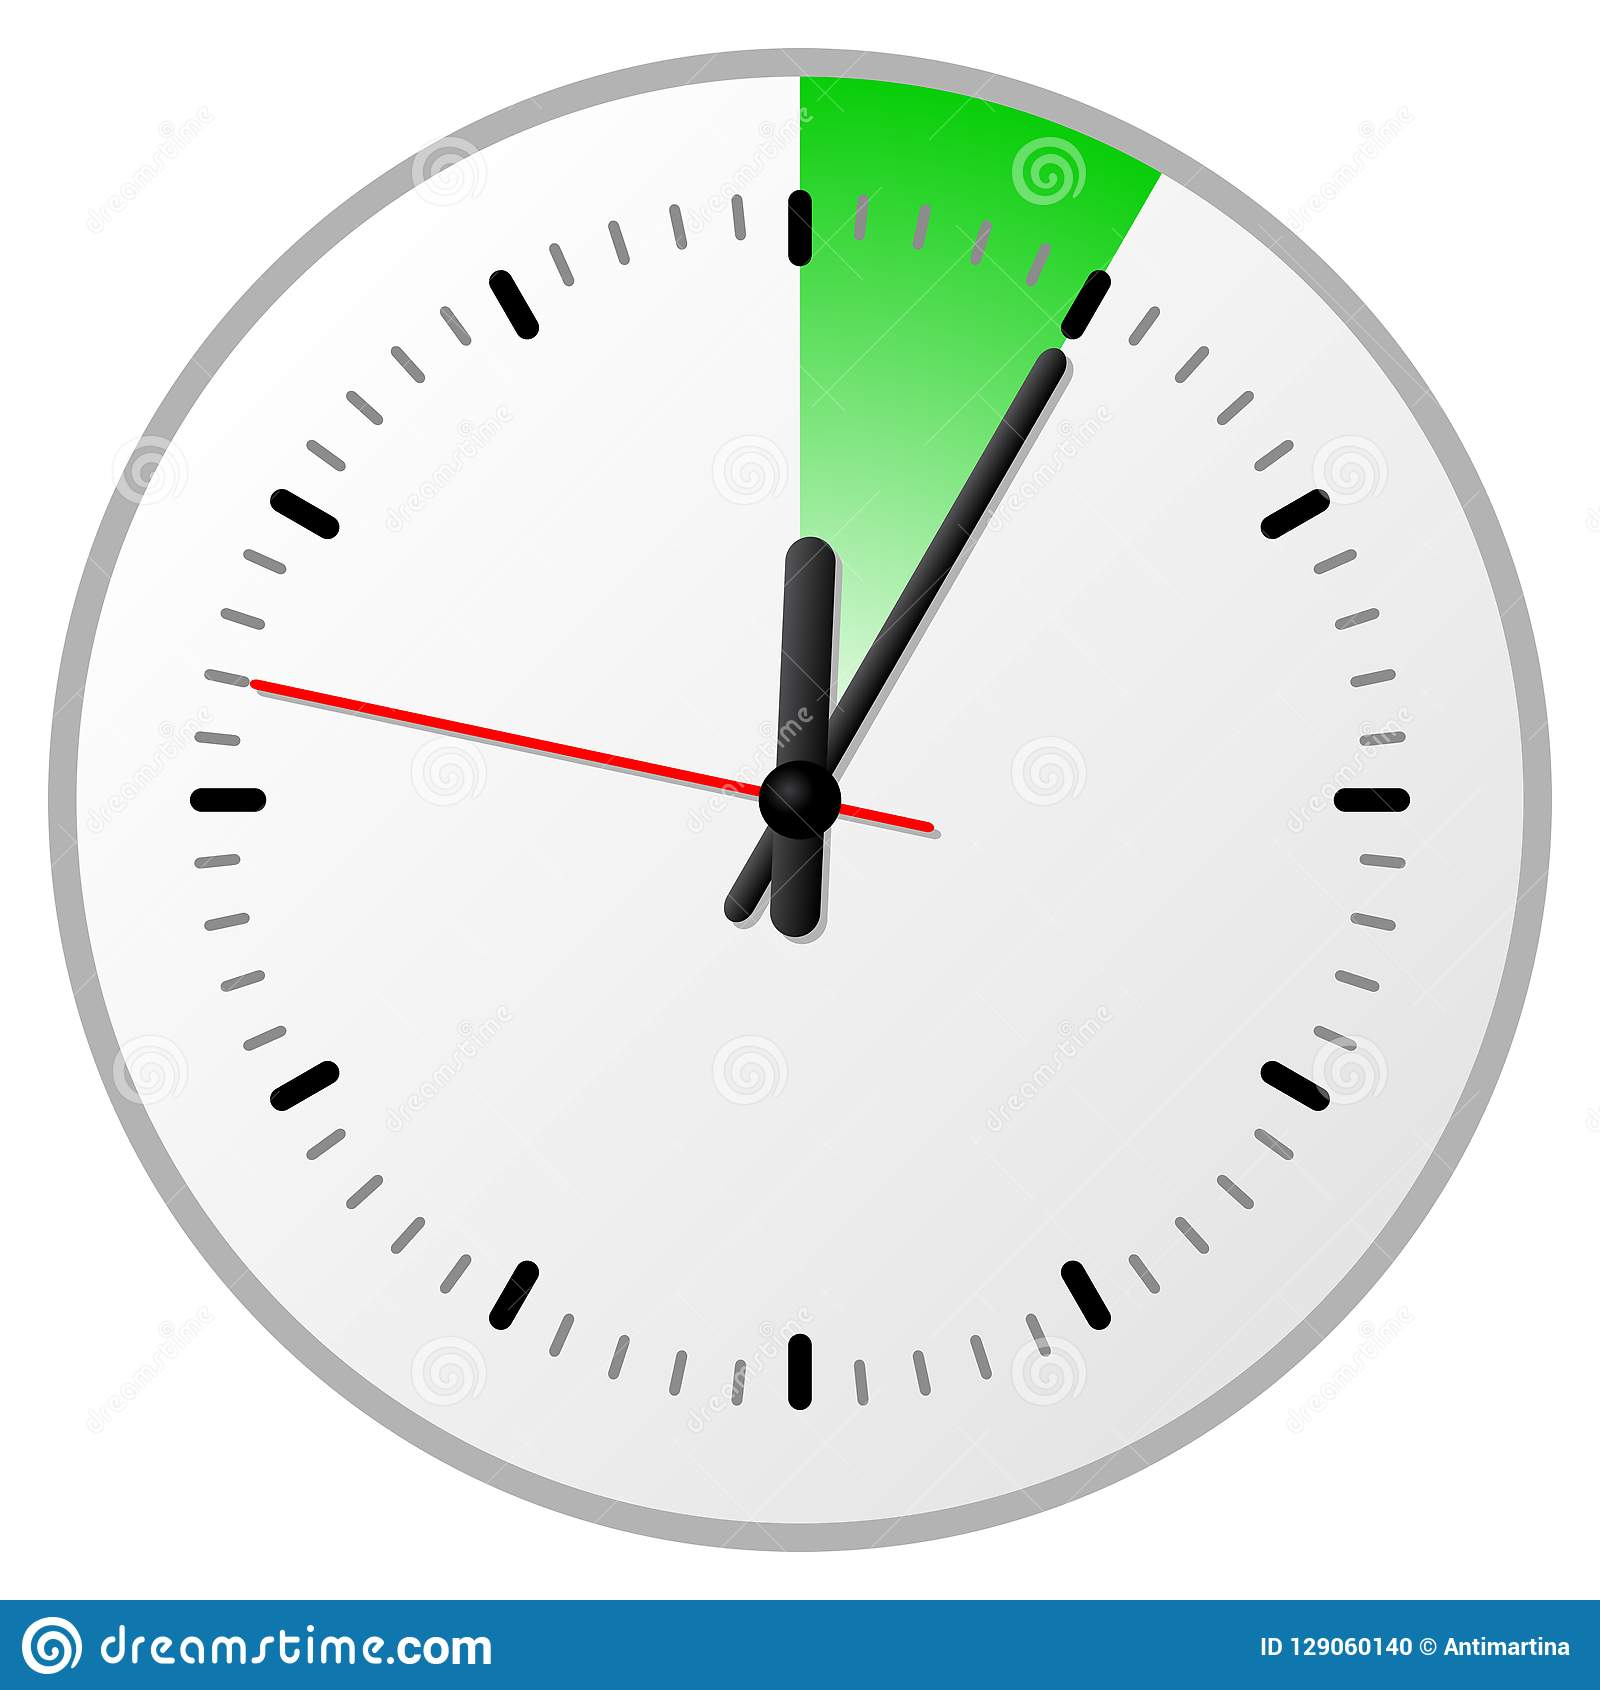 timer with 5 five minutes stock vector illustration of late 129060140